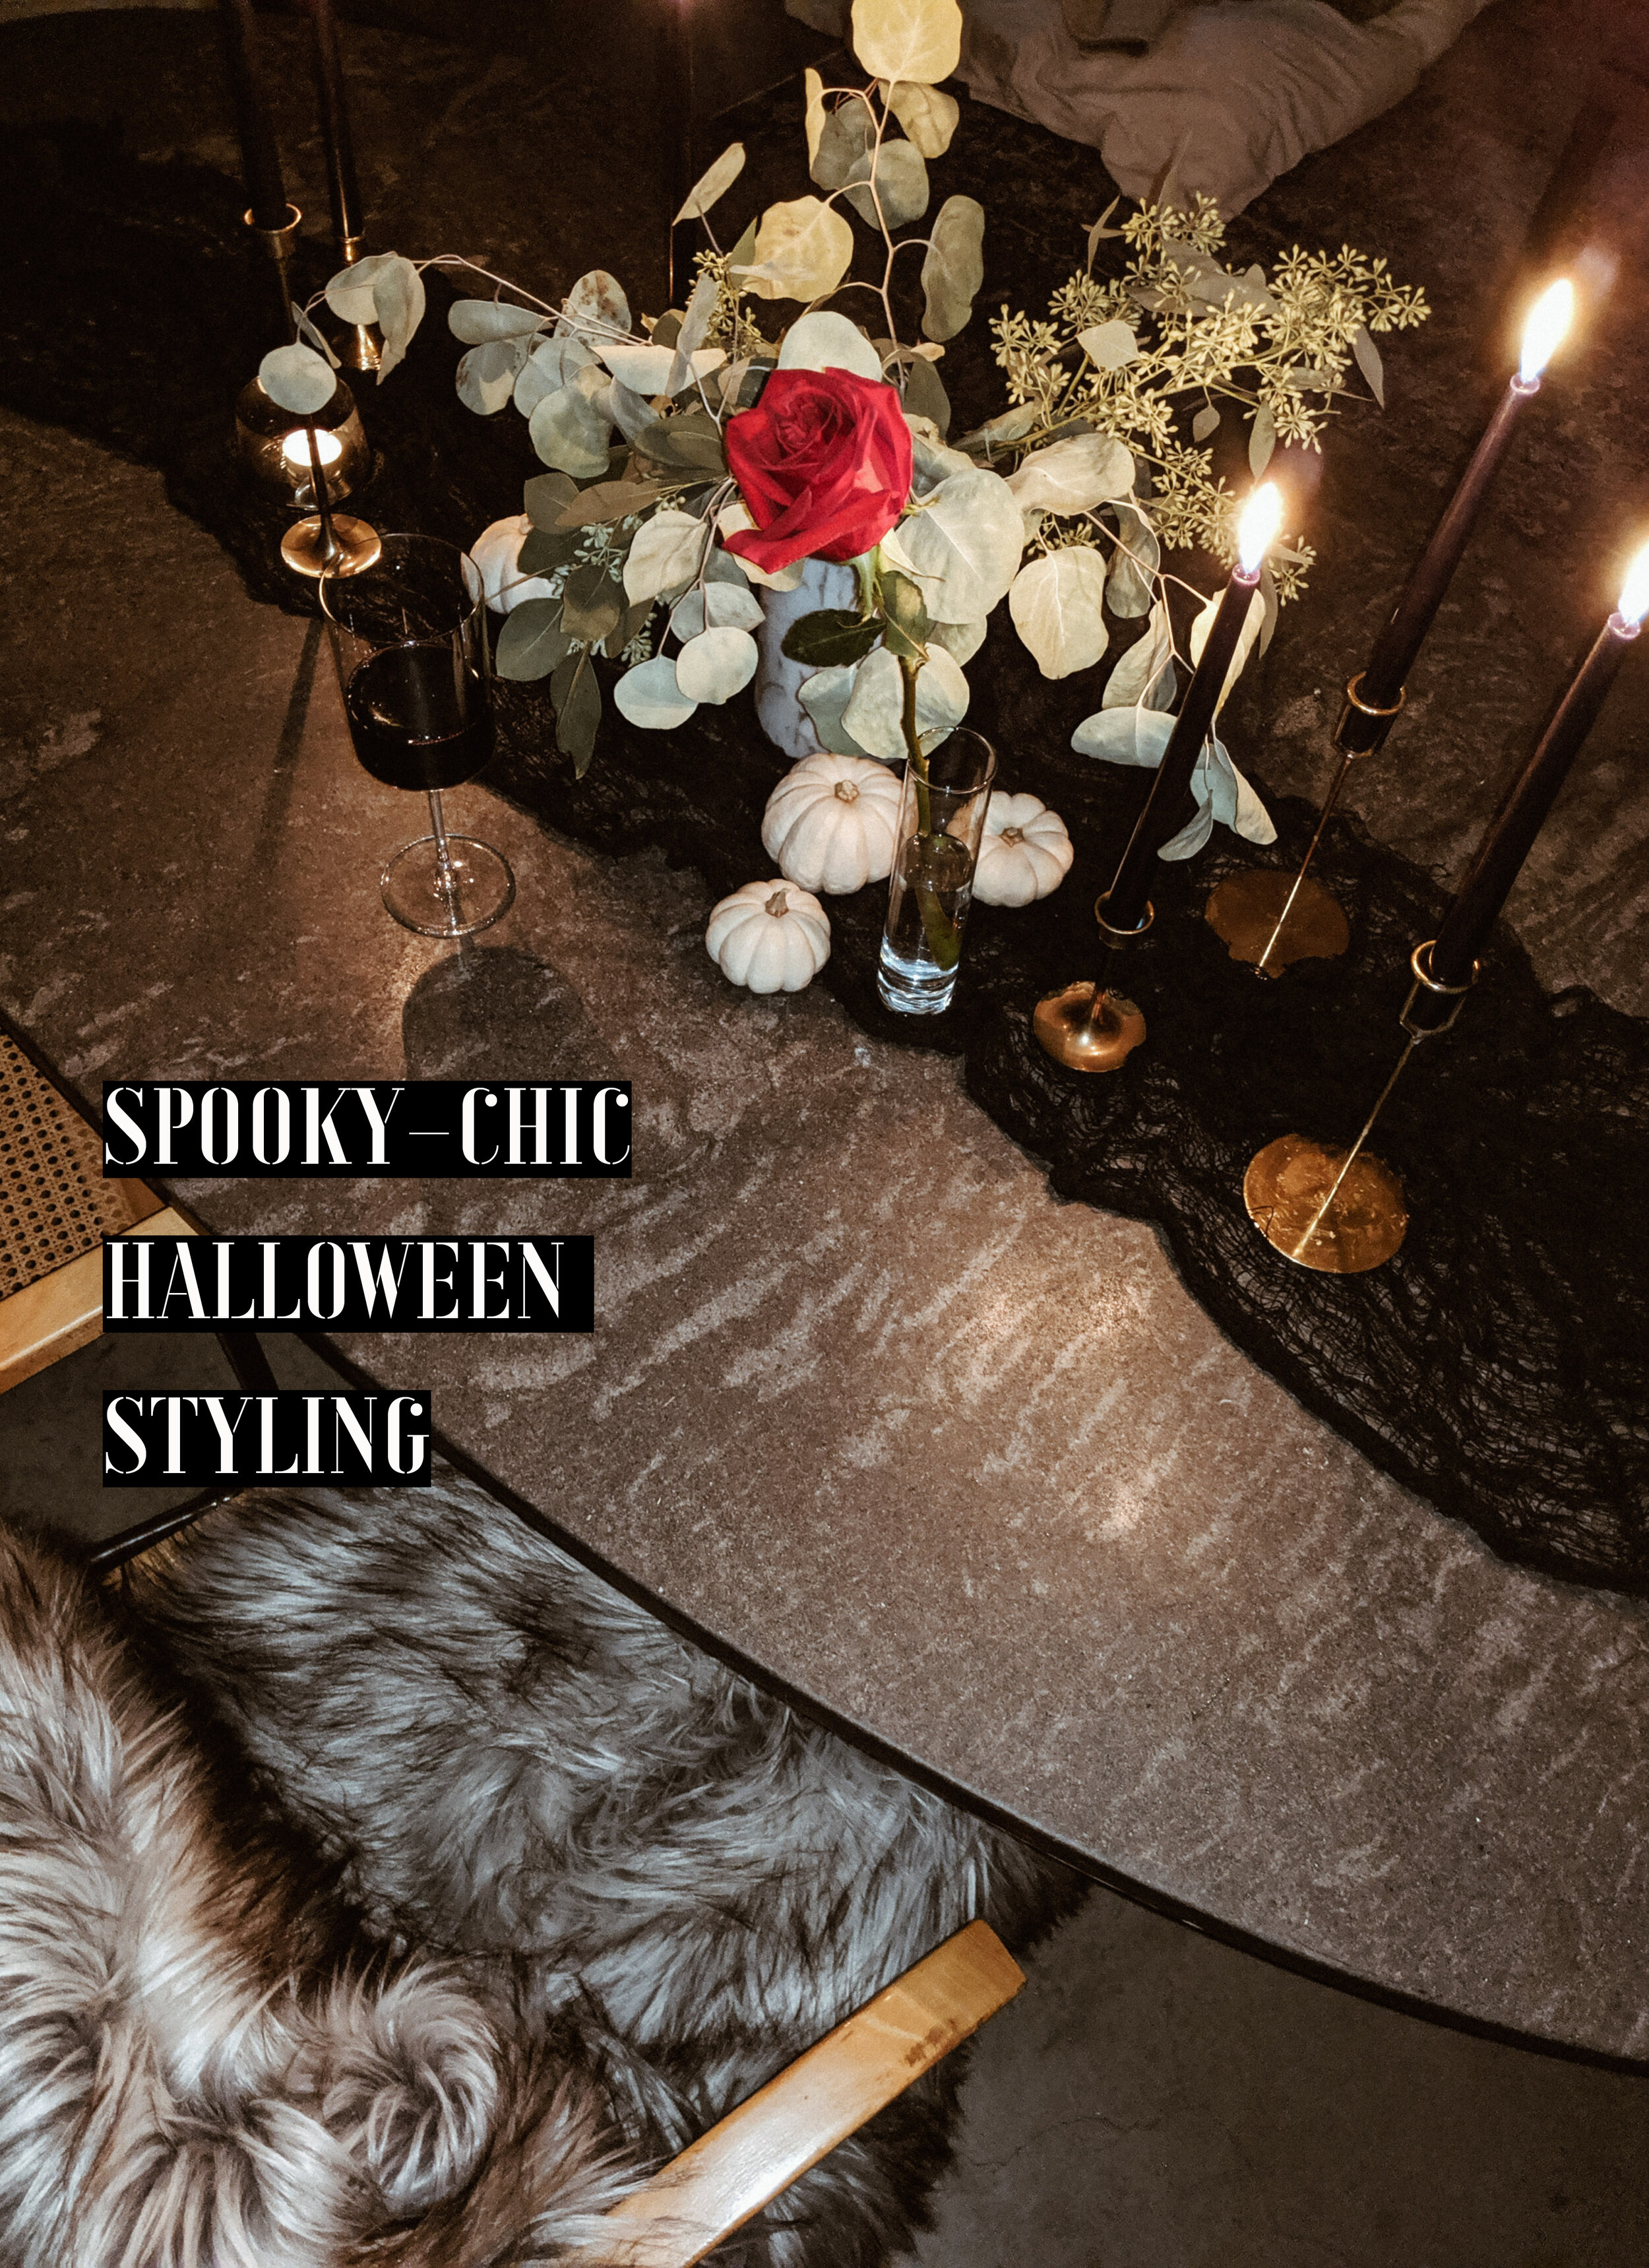 Always Looking For The Magic - Spooky Chic Halloween Styling